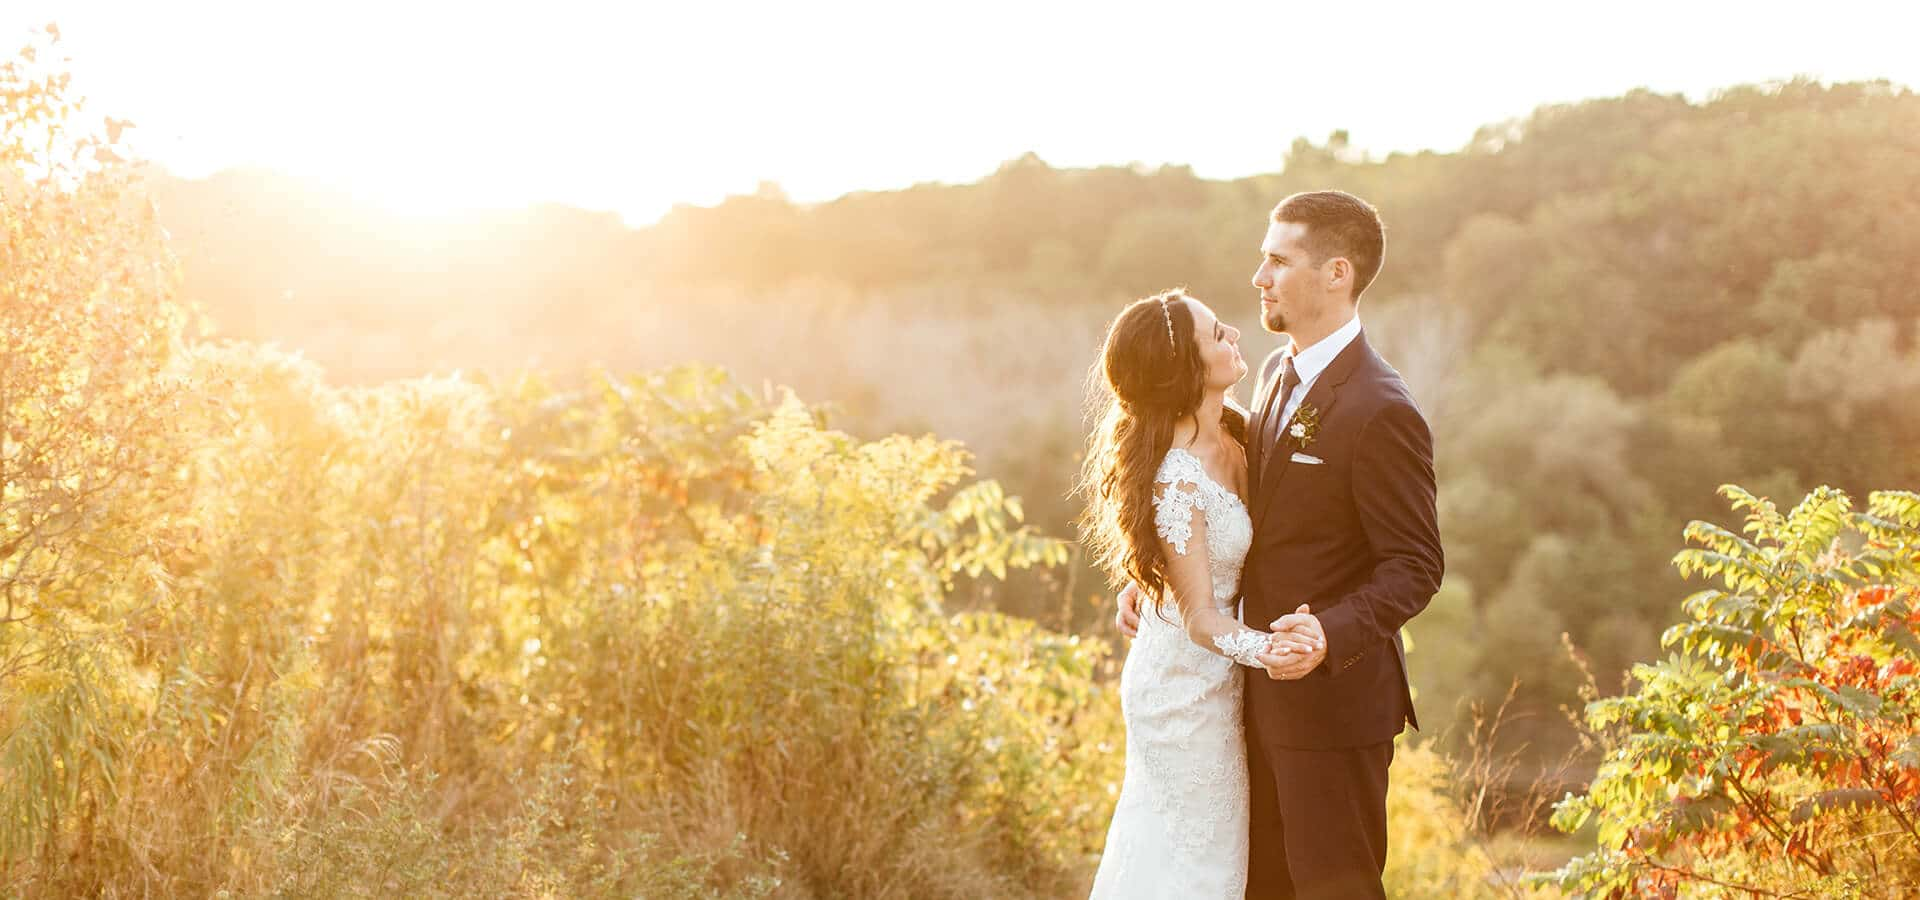 Hero image for 5 Age-Old Wedding Traditions You Don't Need to Follow